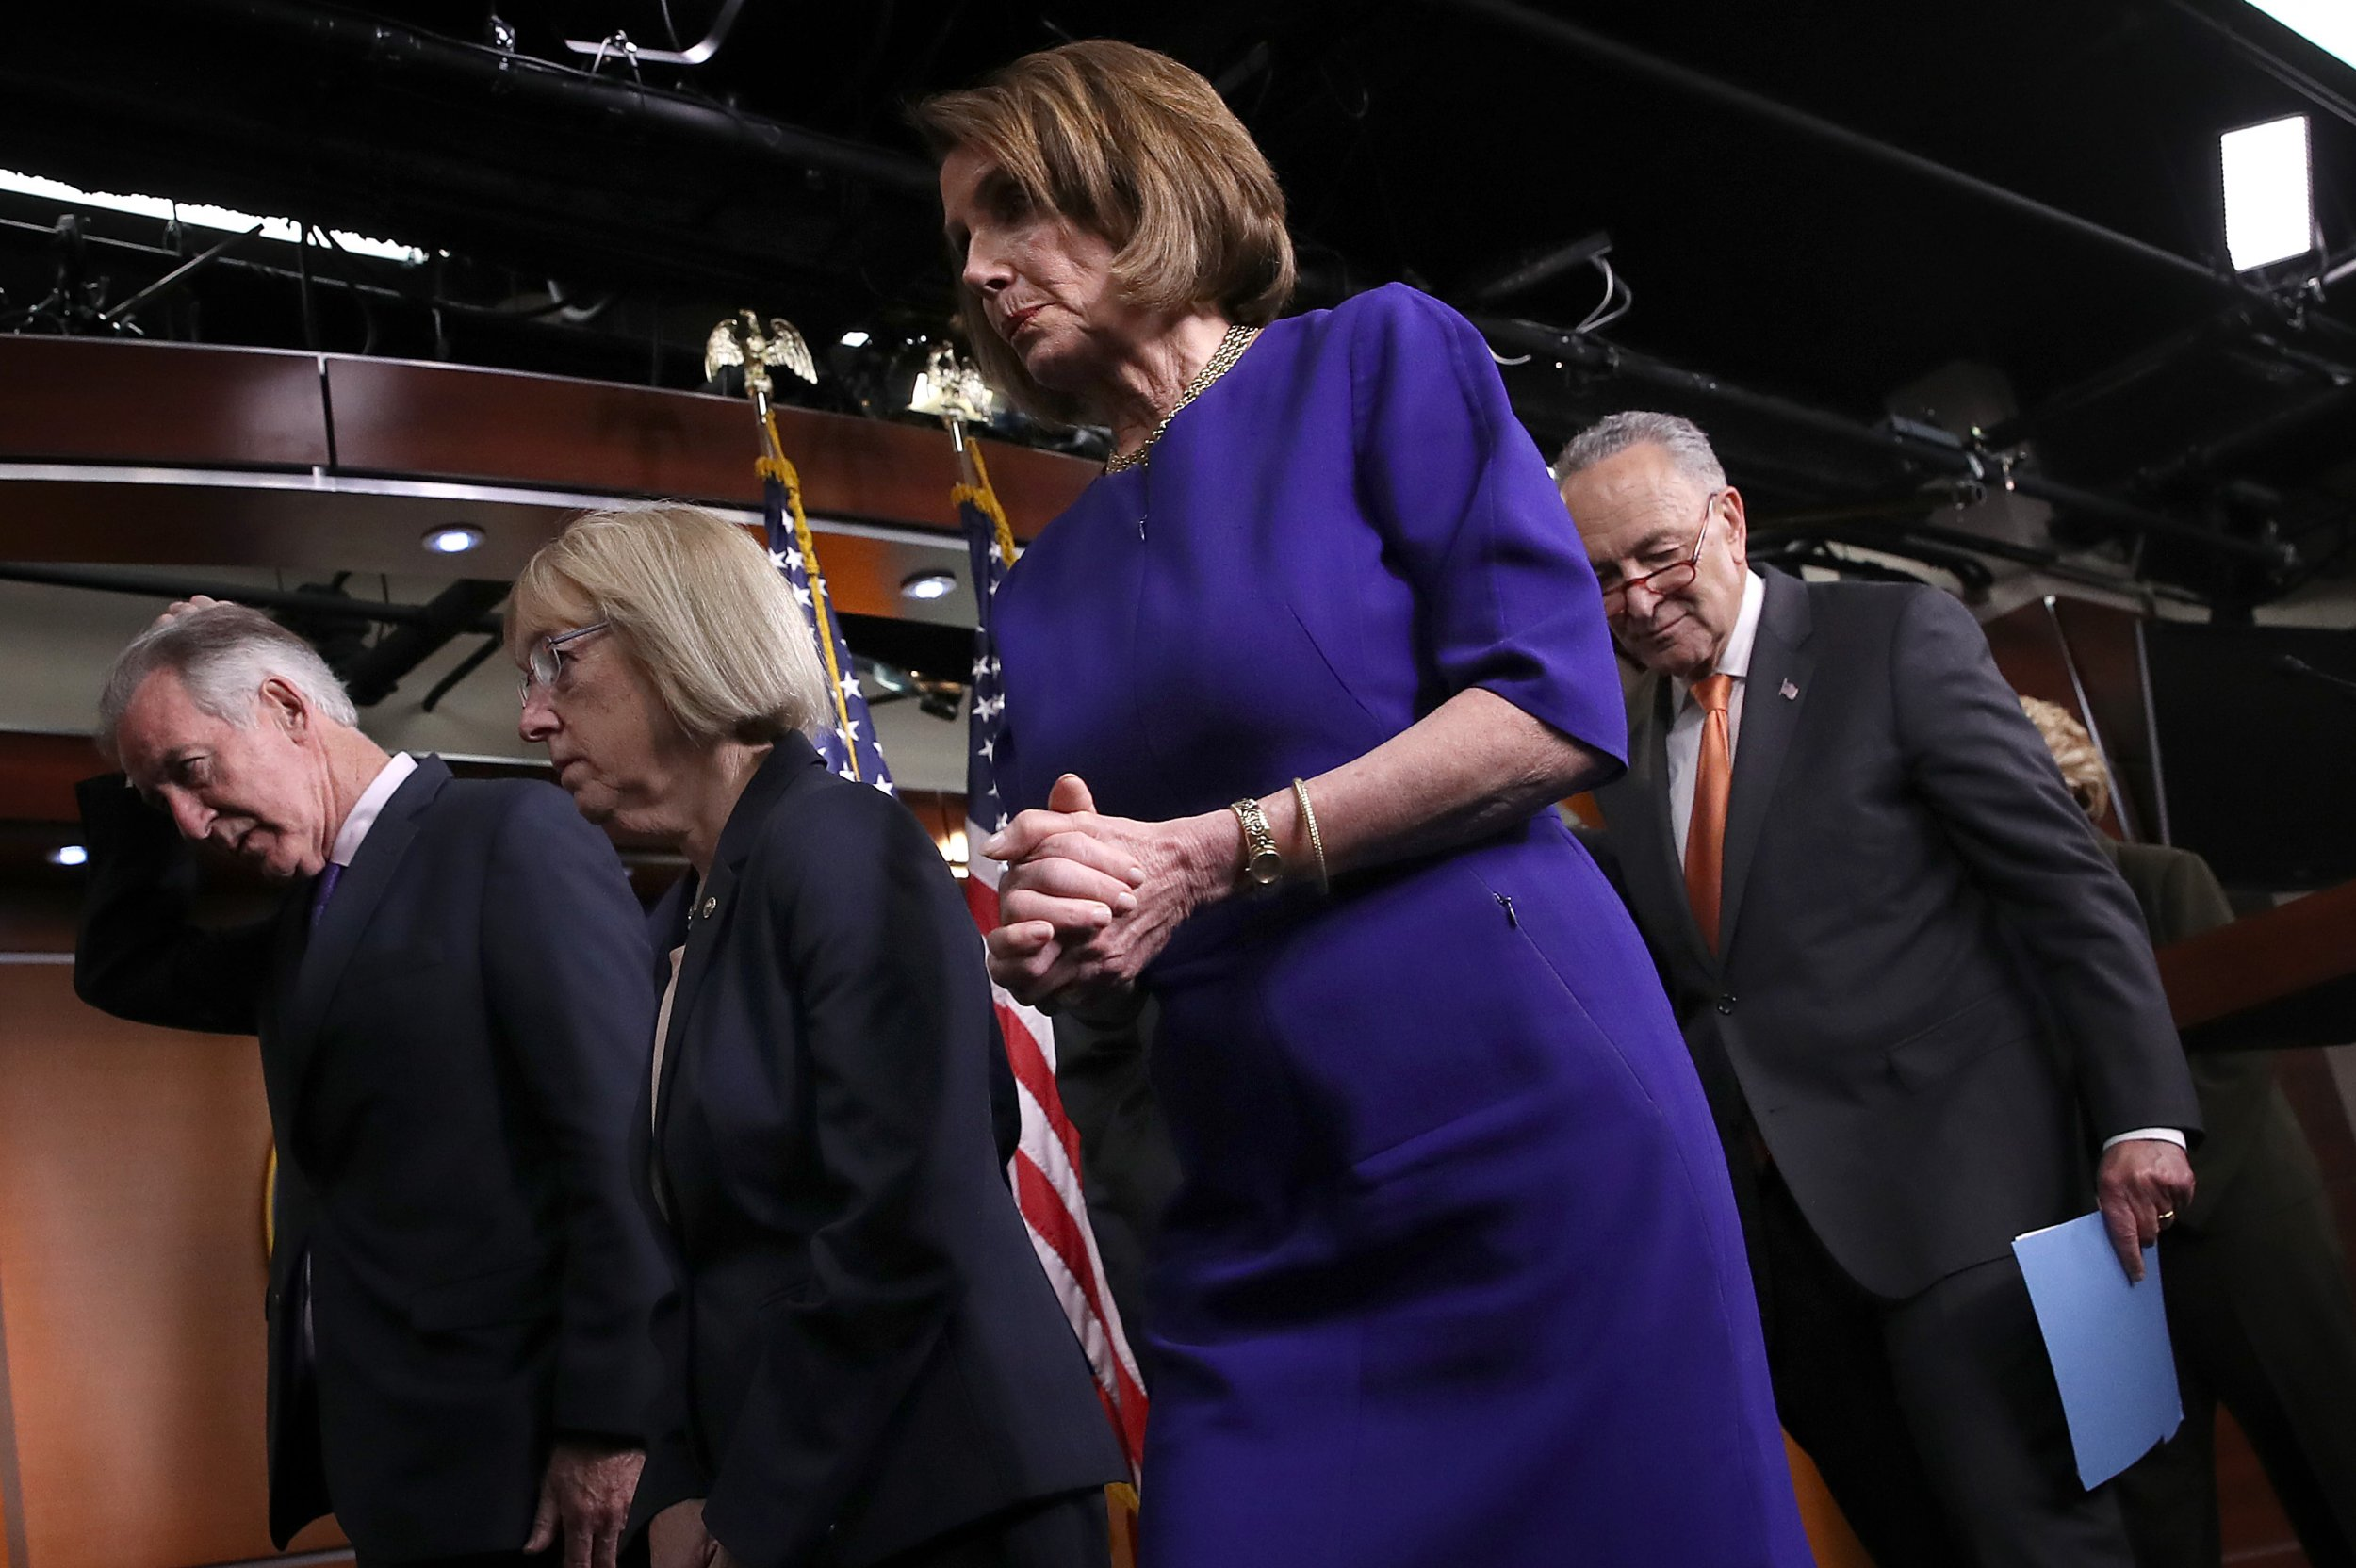 Pelosi says she prays for Trump after failed infrastructure meeting